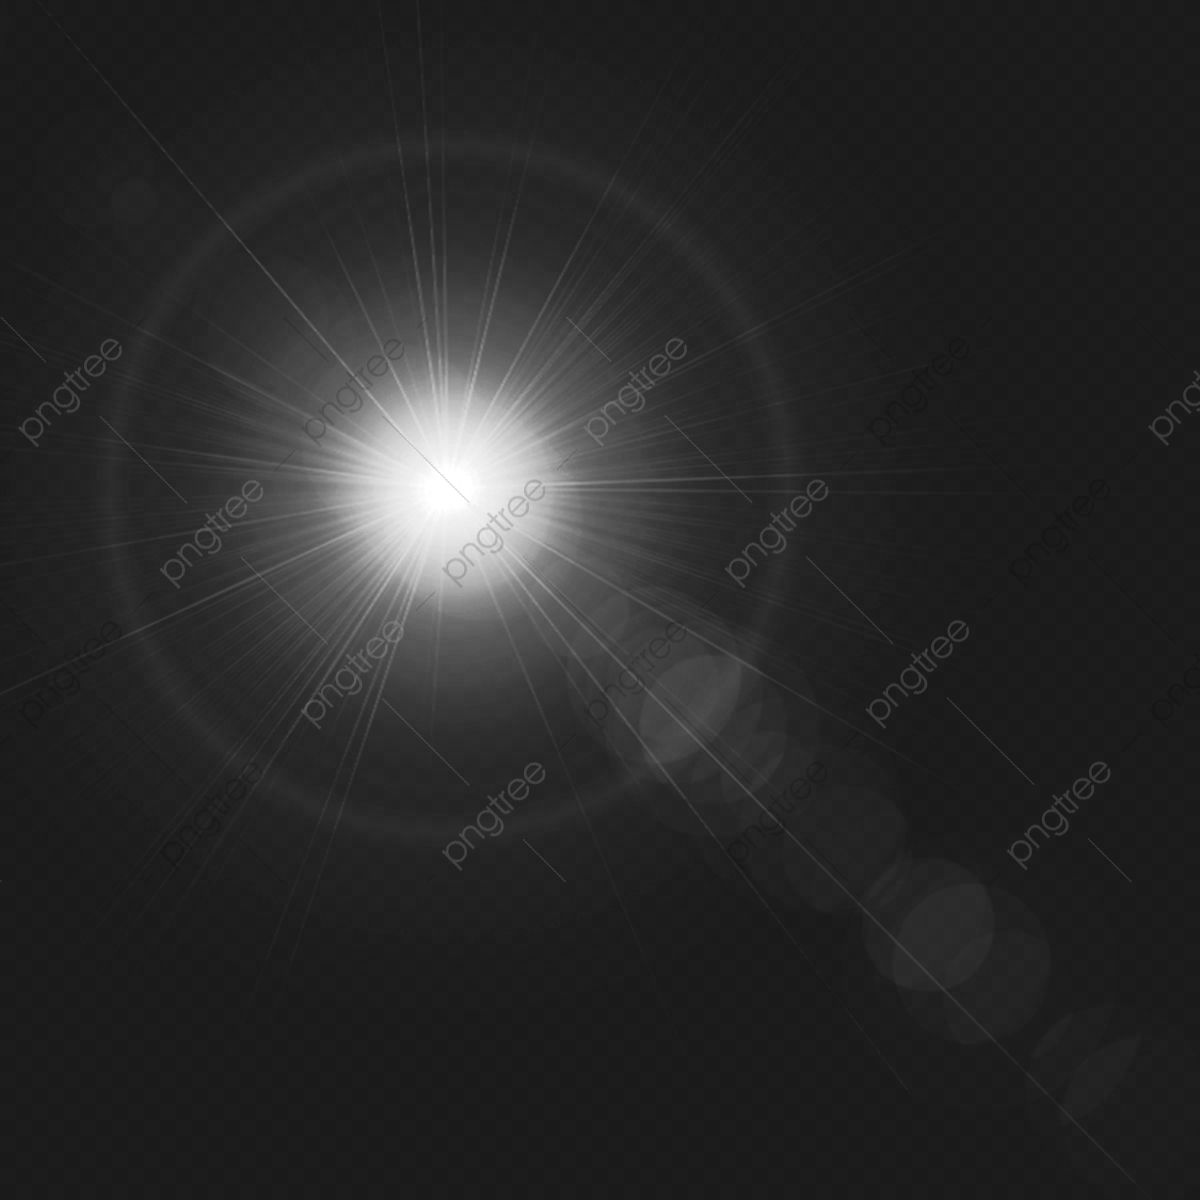 Sunlight Lens Flare Vector Effect Lens Icons Abstract Light Png Transparent Clipart Image And Psd File For Free Download In 2021 Lens Flare Lens Flare Effect Background Images Wallpapers